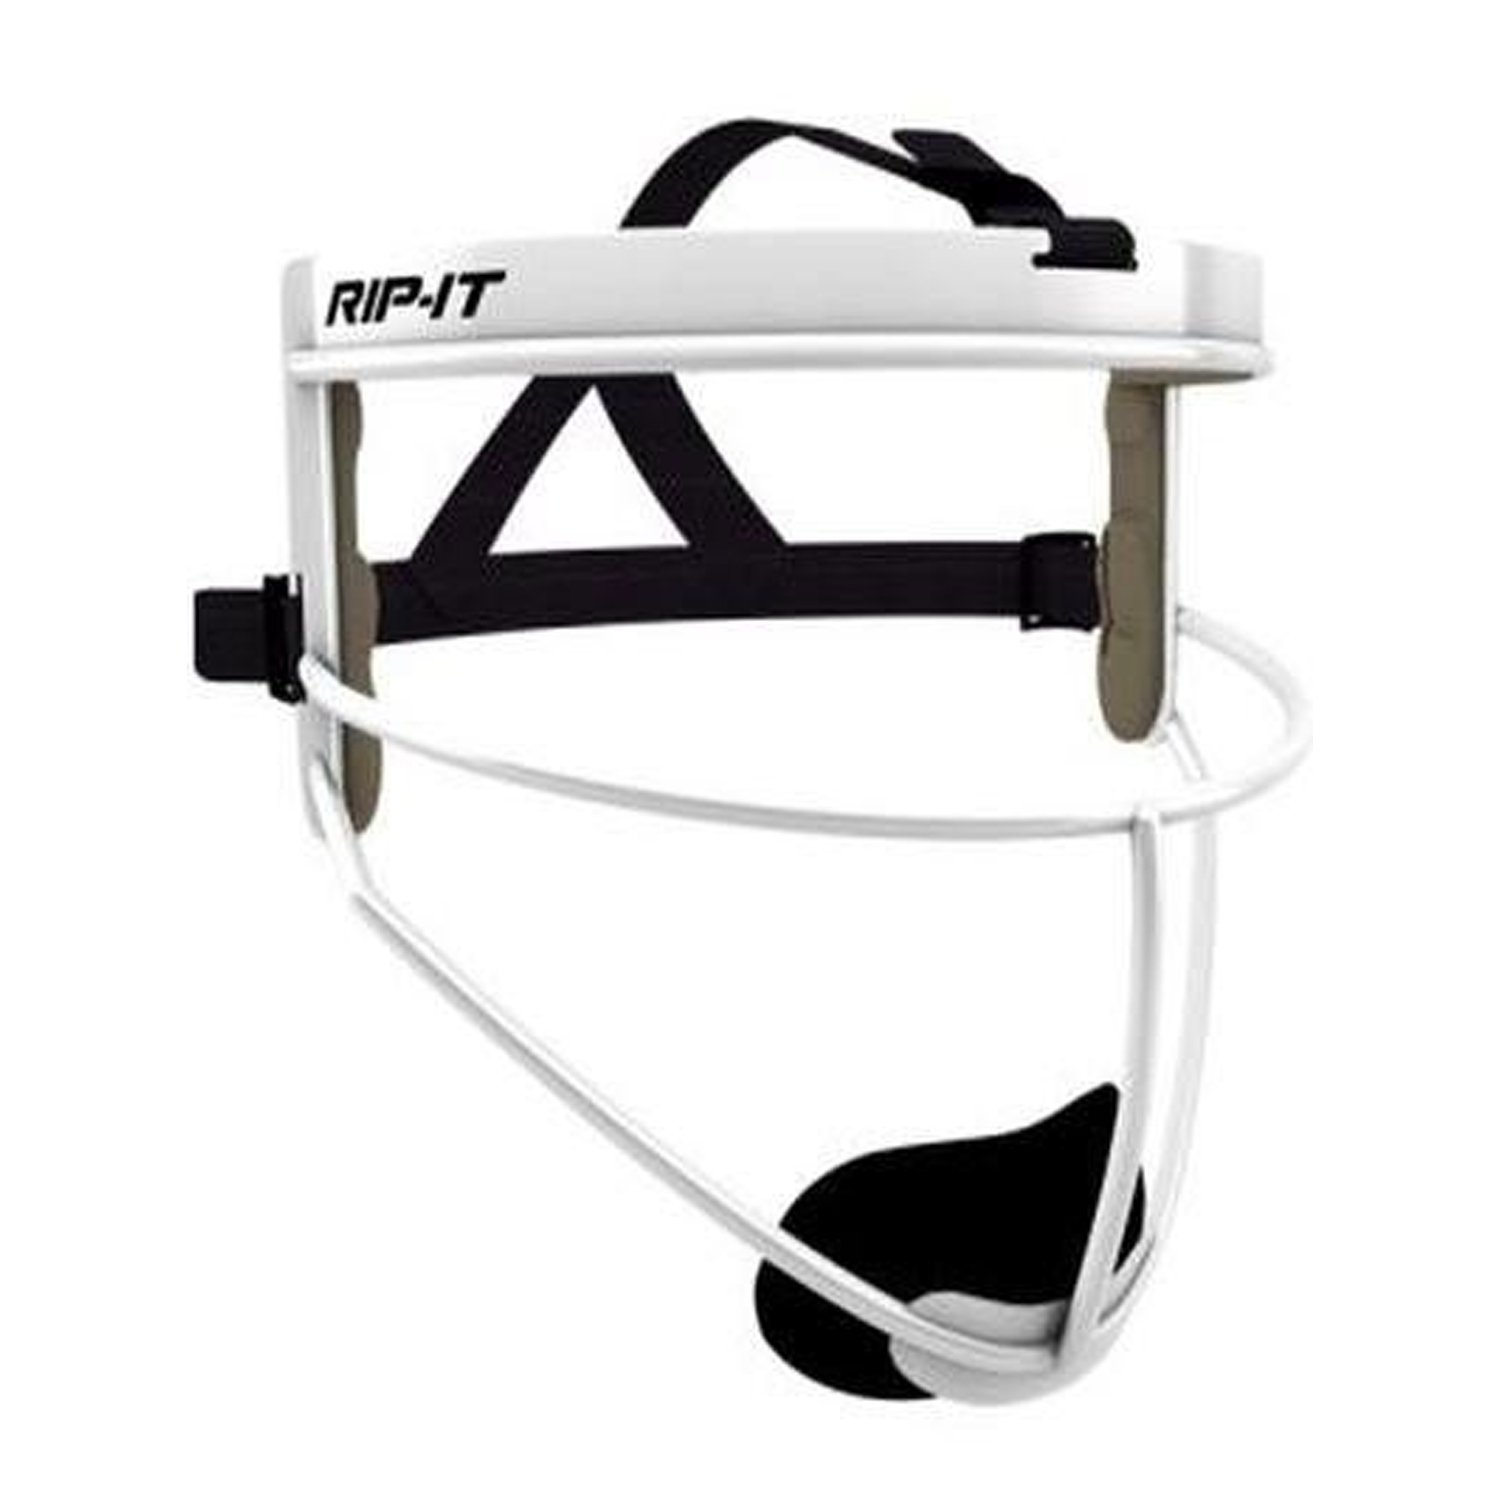 RIP-IT Defense Pro - The Ultimate Softball Fielder's Mask - Lightweight Protection with Uninhibited Visibility, Performance, and Blackout Technology - White - Youth by RIP-IT